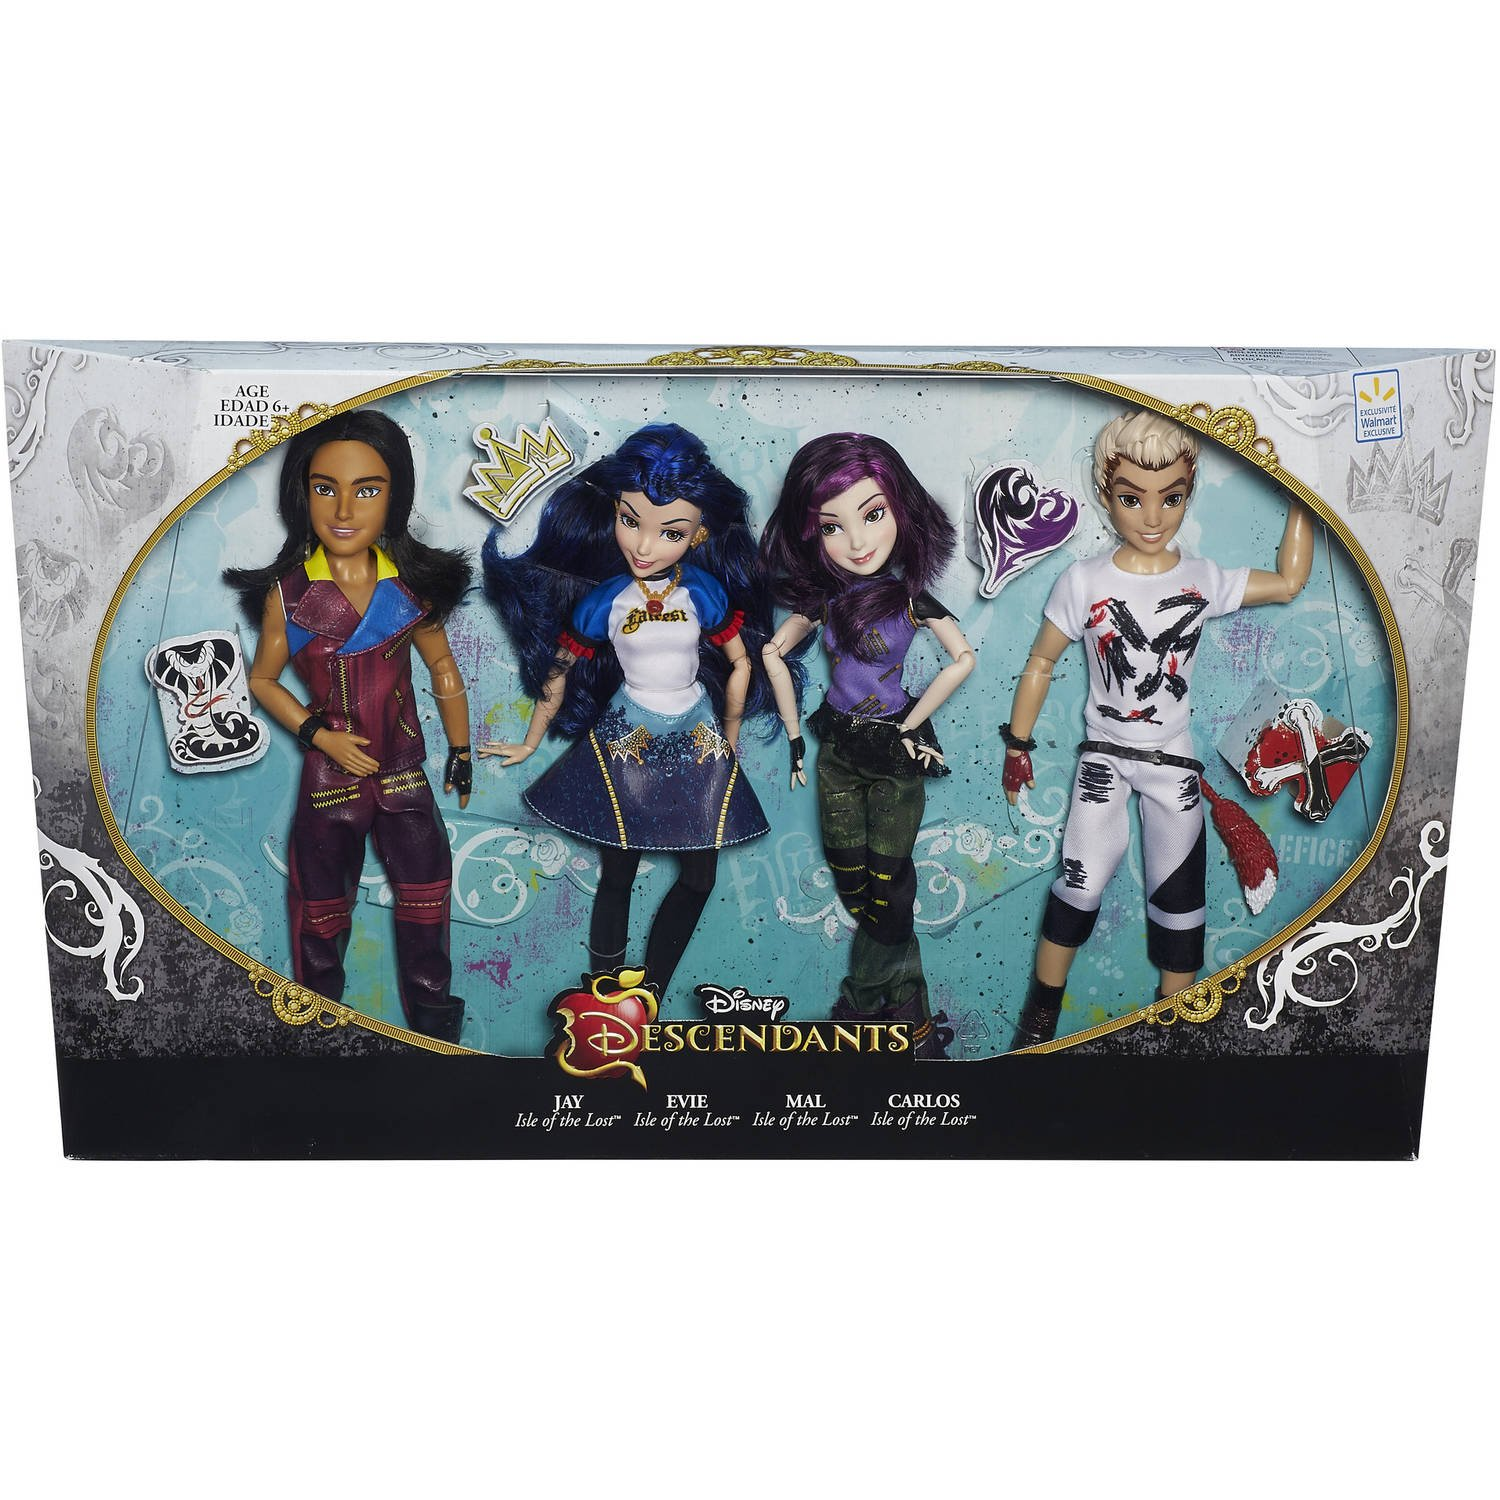 Amazon.es: Disney Descendants EXCLUSIVE Jay Evie Mal Carlos by Disney: Juguetes y juegos